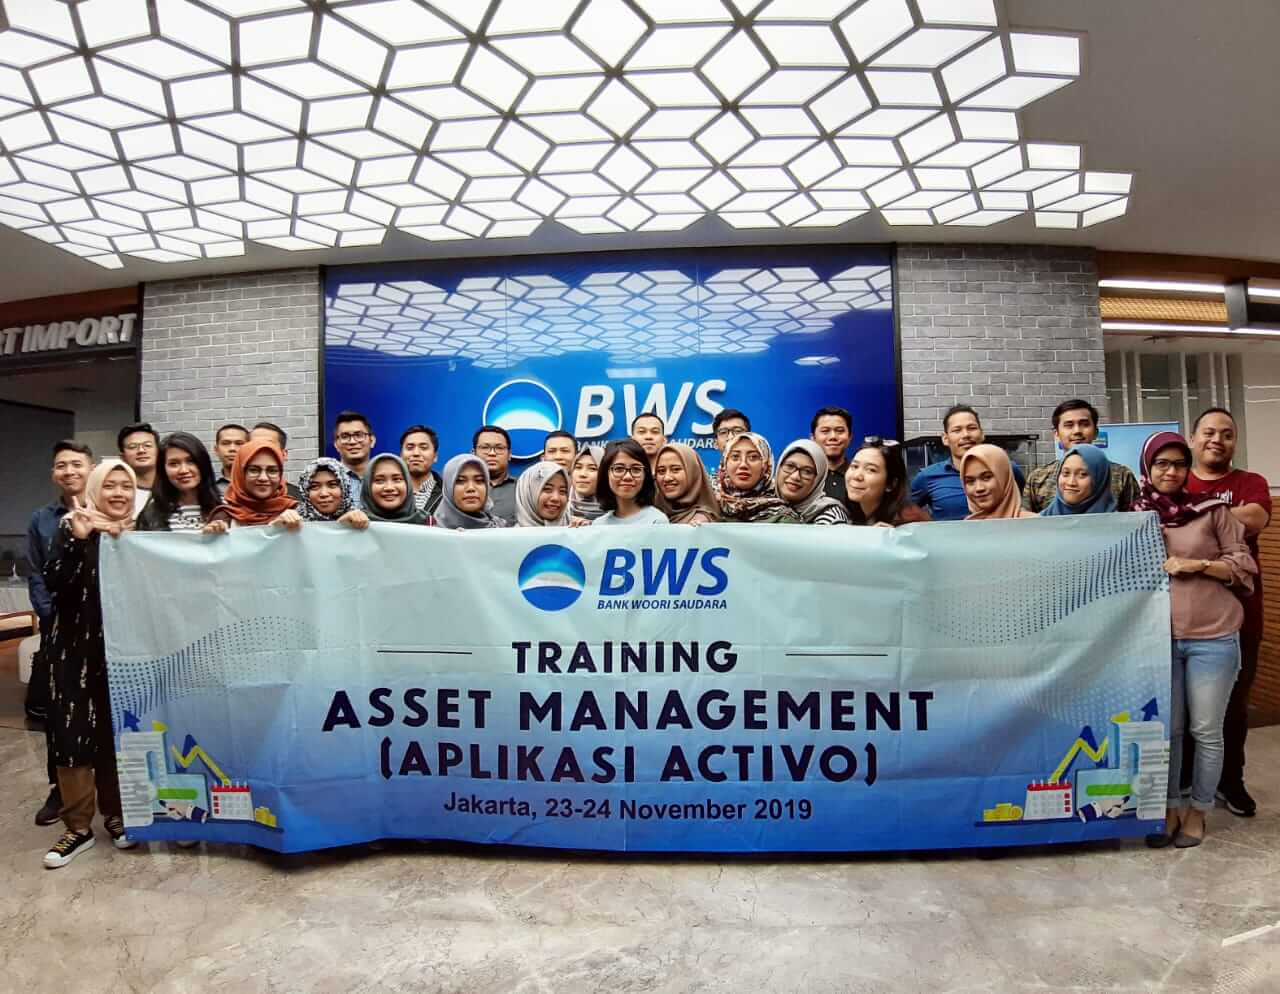 Activo Advanced Training for Bank Woori Saudara (BWS)